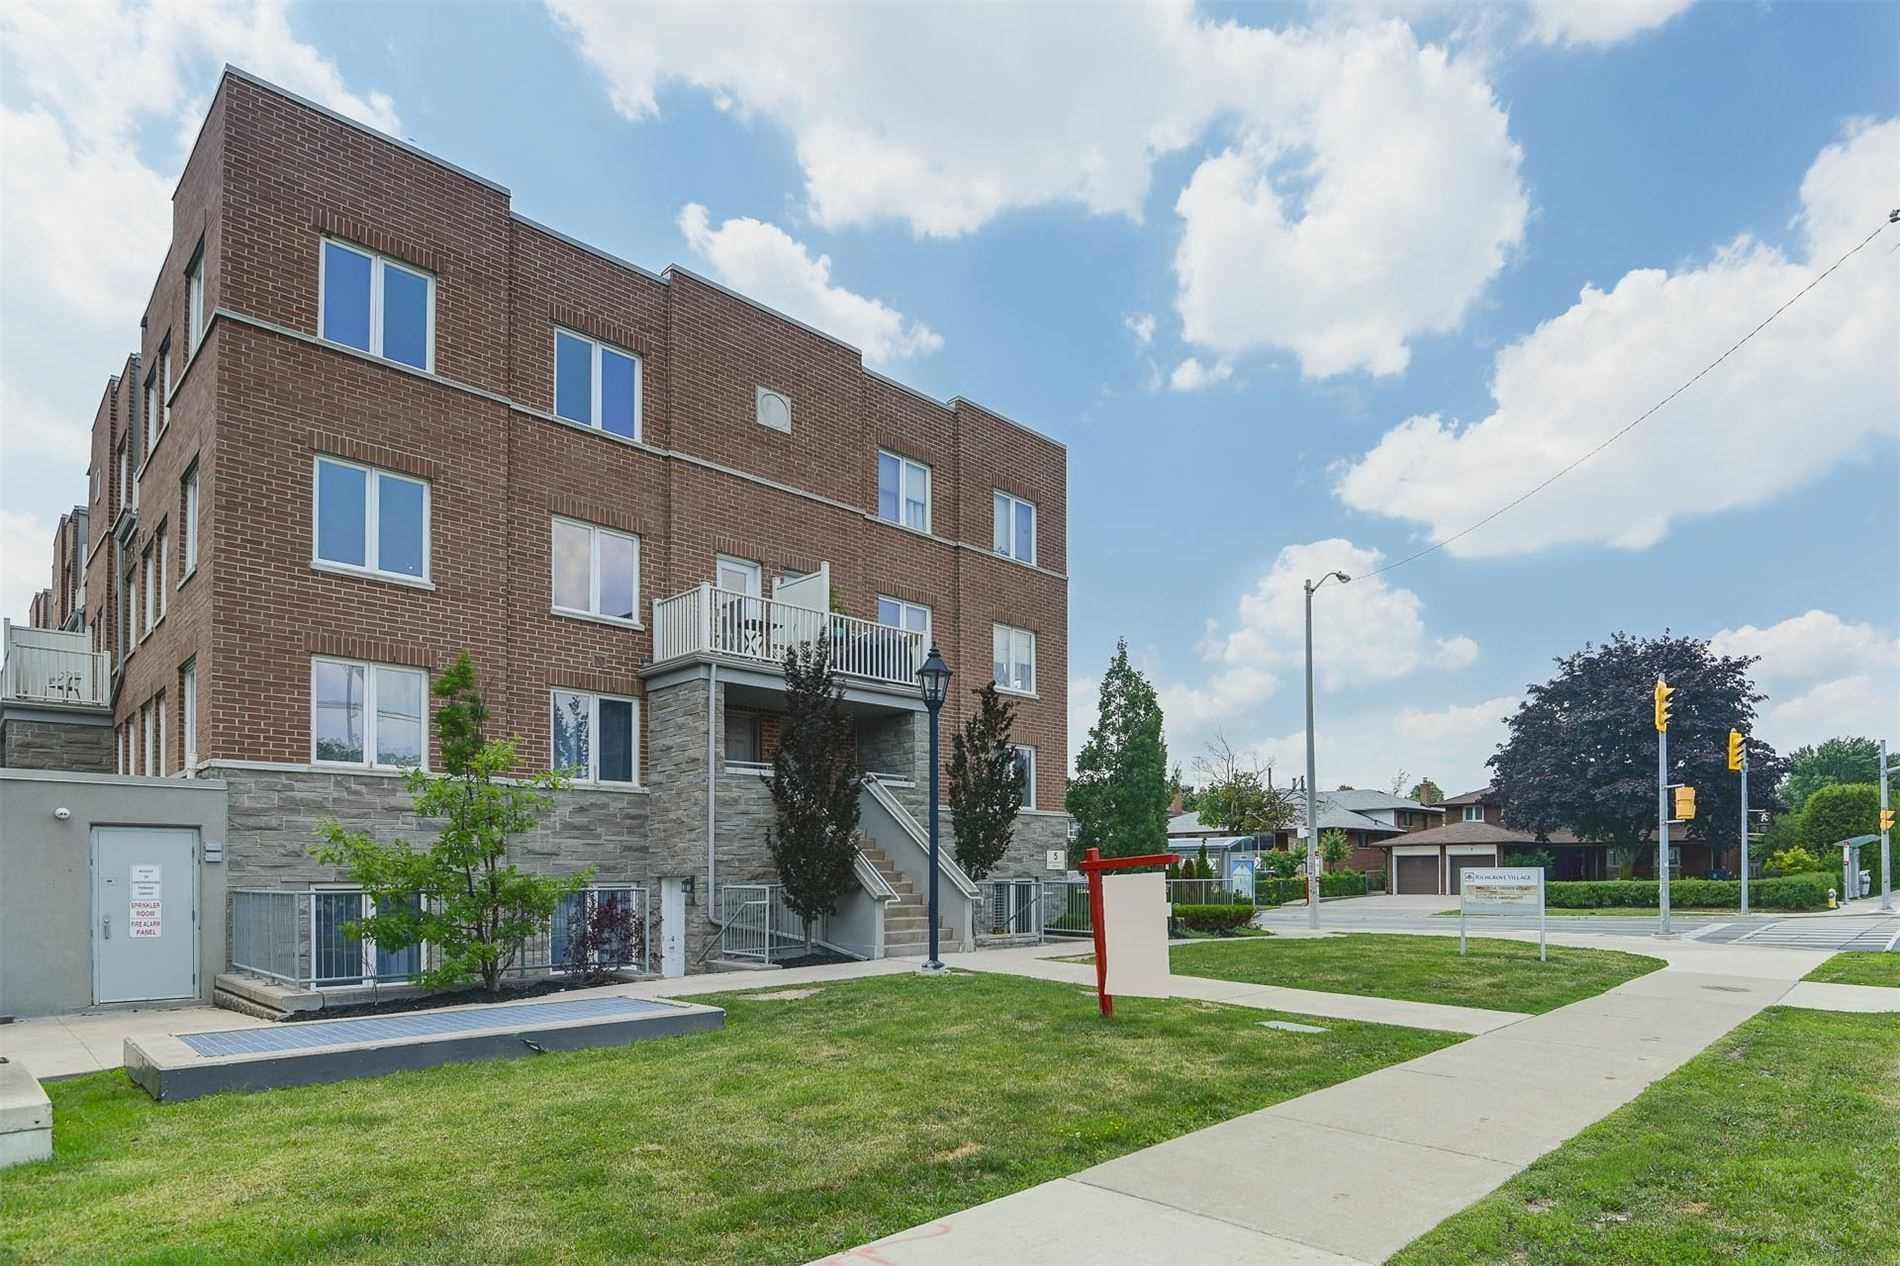 Condo Townhouse For Sale In Toronto , 3 Bedrooms Bedrooms, ,3 BathroomsBathrooms,Condo Townhouse,For Sale,220,Richgrove